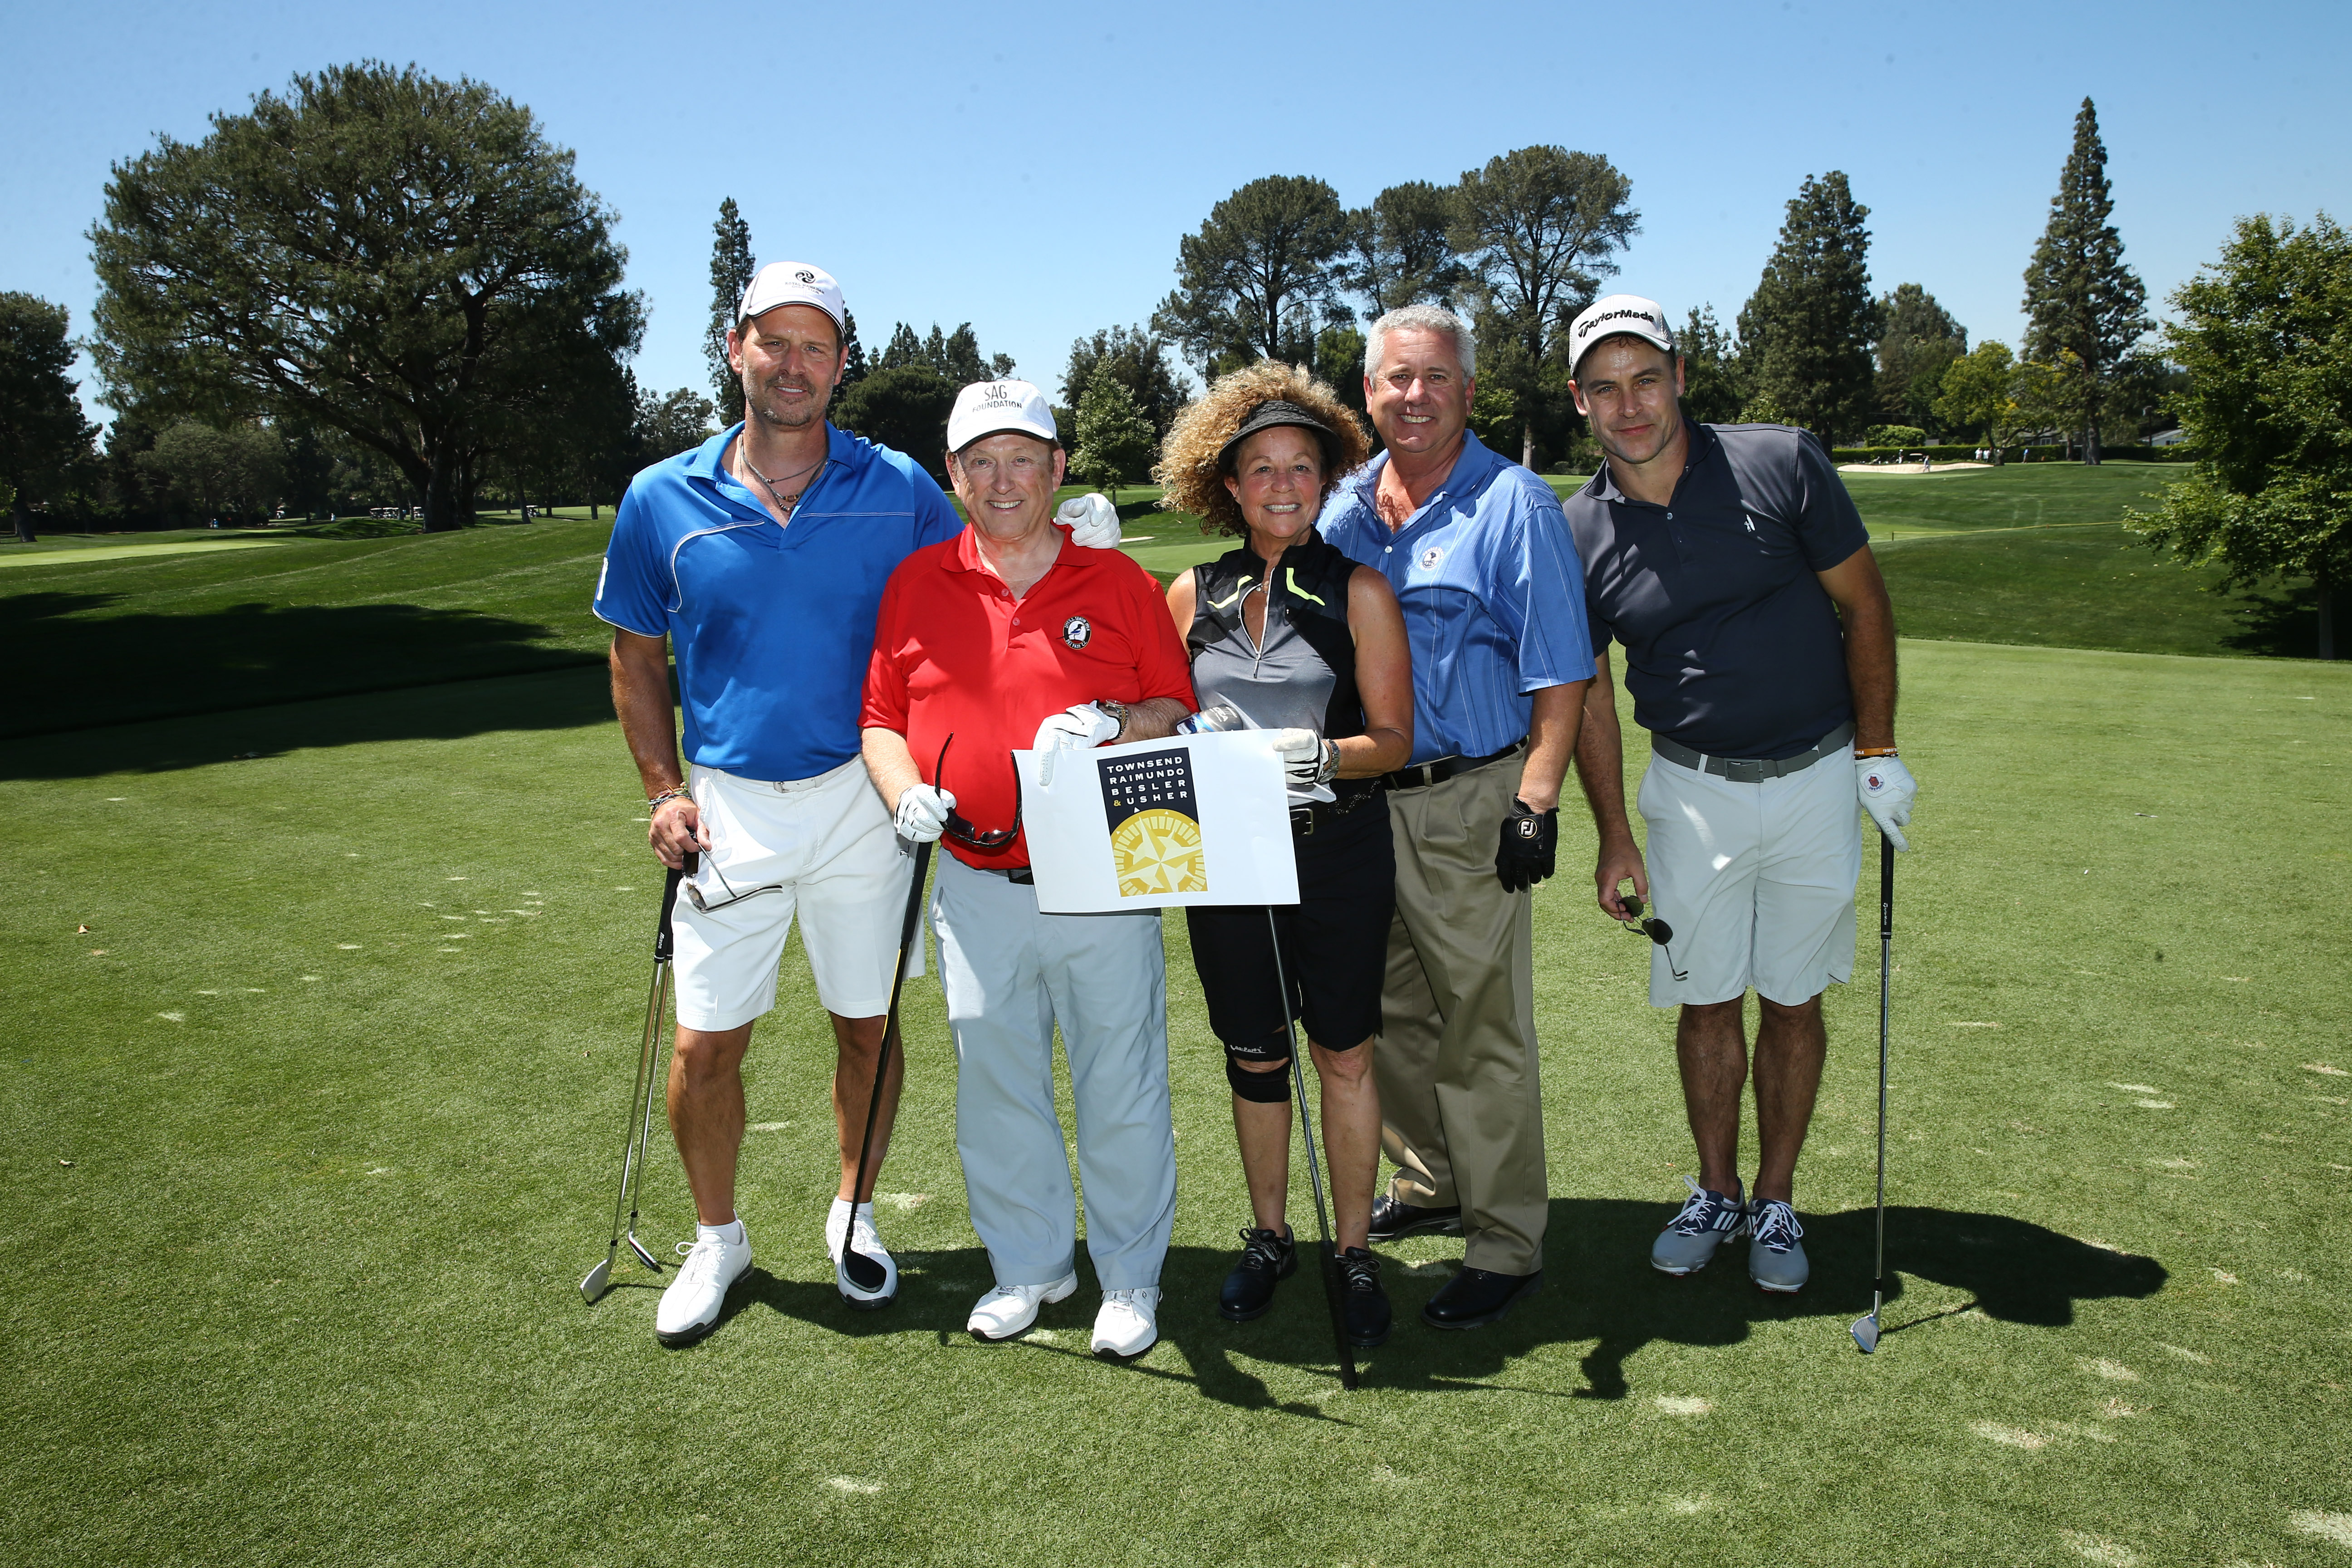 David Townsend, Mike Nevins, Boyd Kestner, Judie Goldman, and Jeff Nordling of Team Townsend play at the Screen Actors Guild Foundation's 6th Annual Los Angeles Golf Classic on June 8, 2015 in Burbank, California. (Photo by Mark Davis/Getty Images for The Screen Actors Guild Foundation)